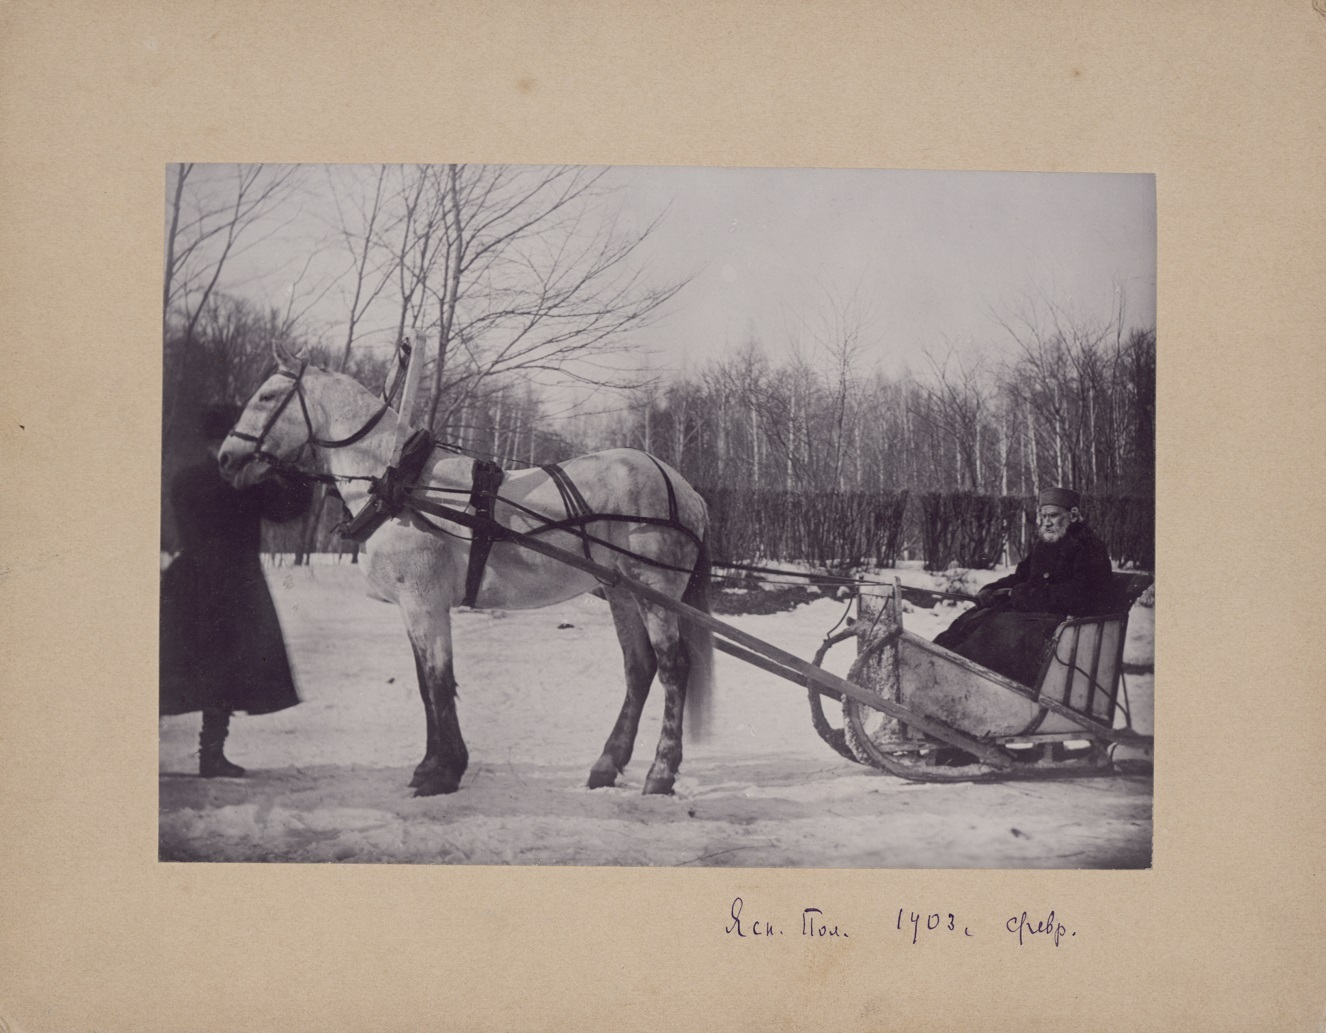 Most of the photo-portraits of Tolstoy were done at the initiative of Sofia. Her camera recorded important events and everyday life // Tolstoy in a one-horse sleigh, 1903, Yasnaya Polyana. Photo by Sofia Tolstoy